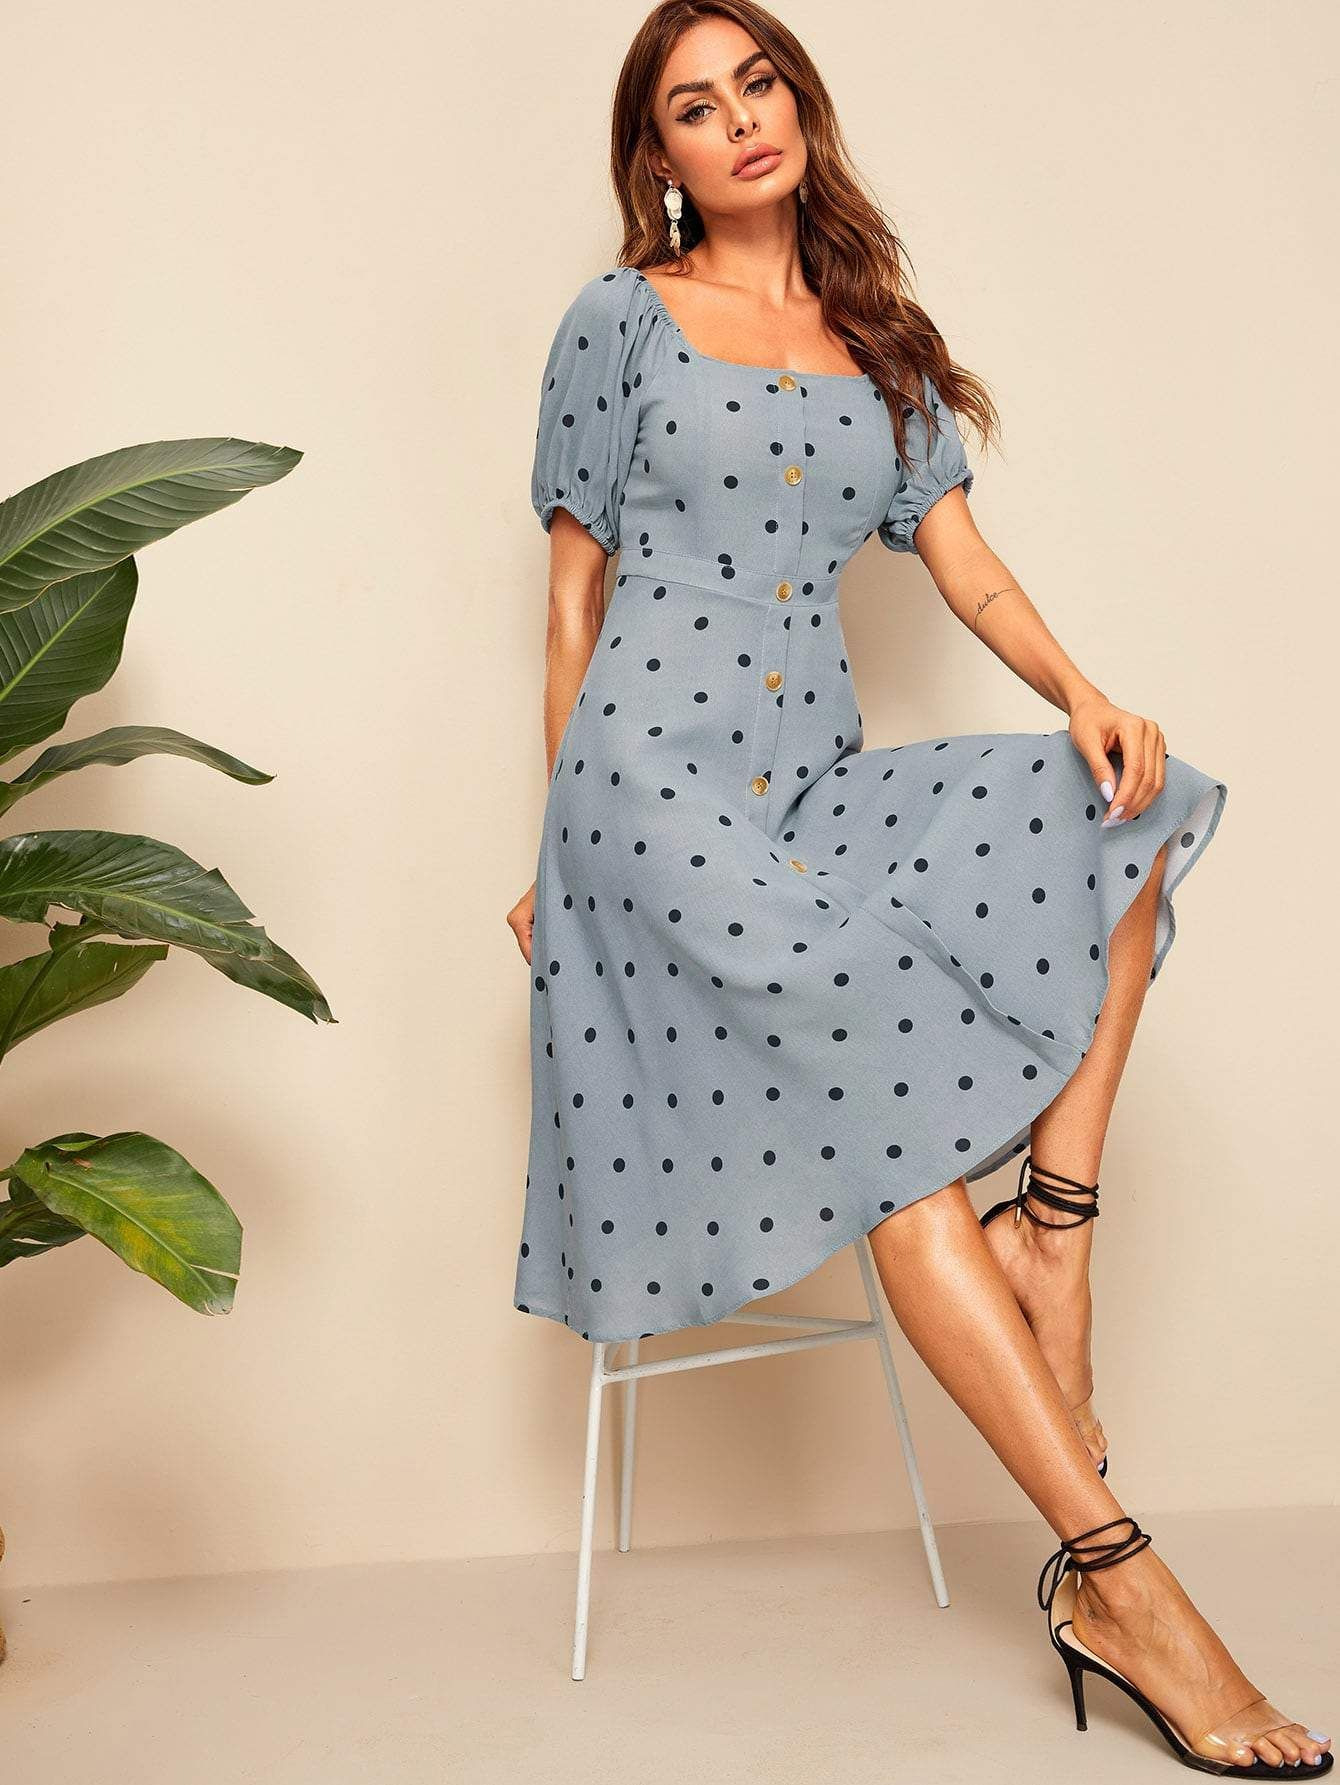 Blue Polka Dot Button Front Square Neck Dress Cs694069 In